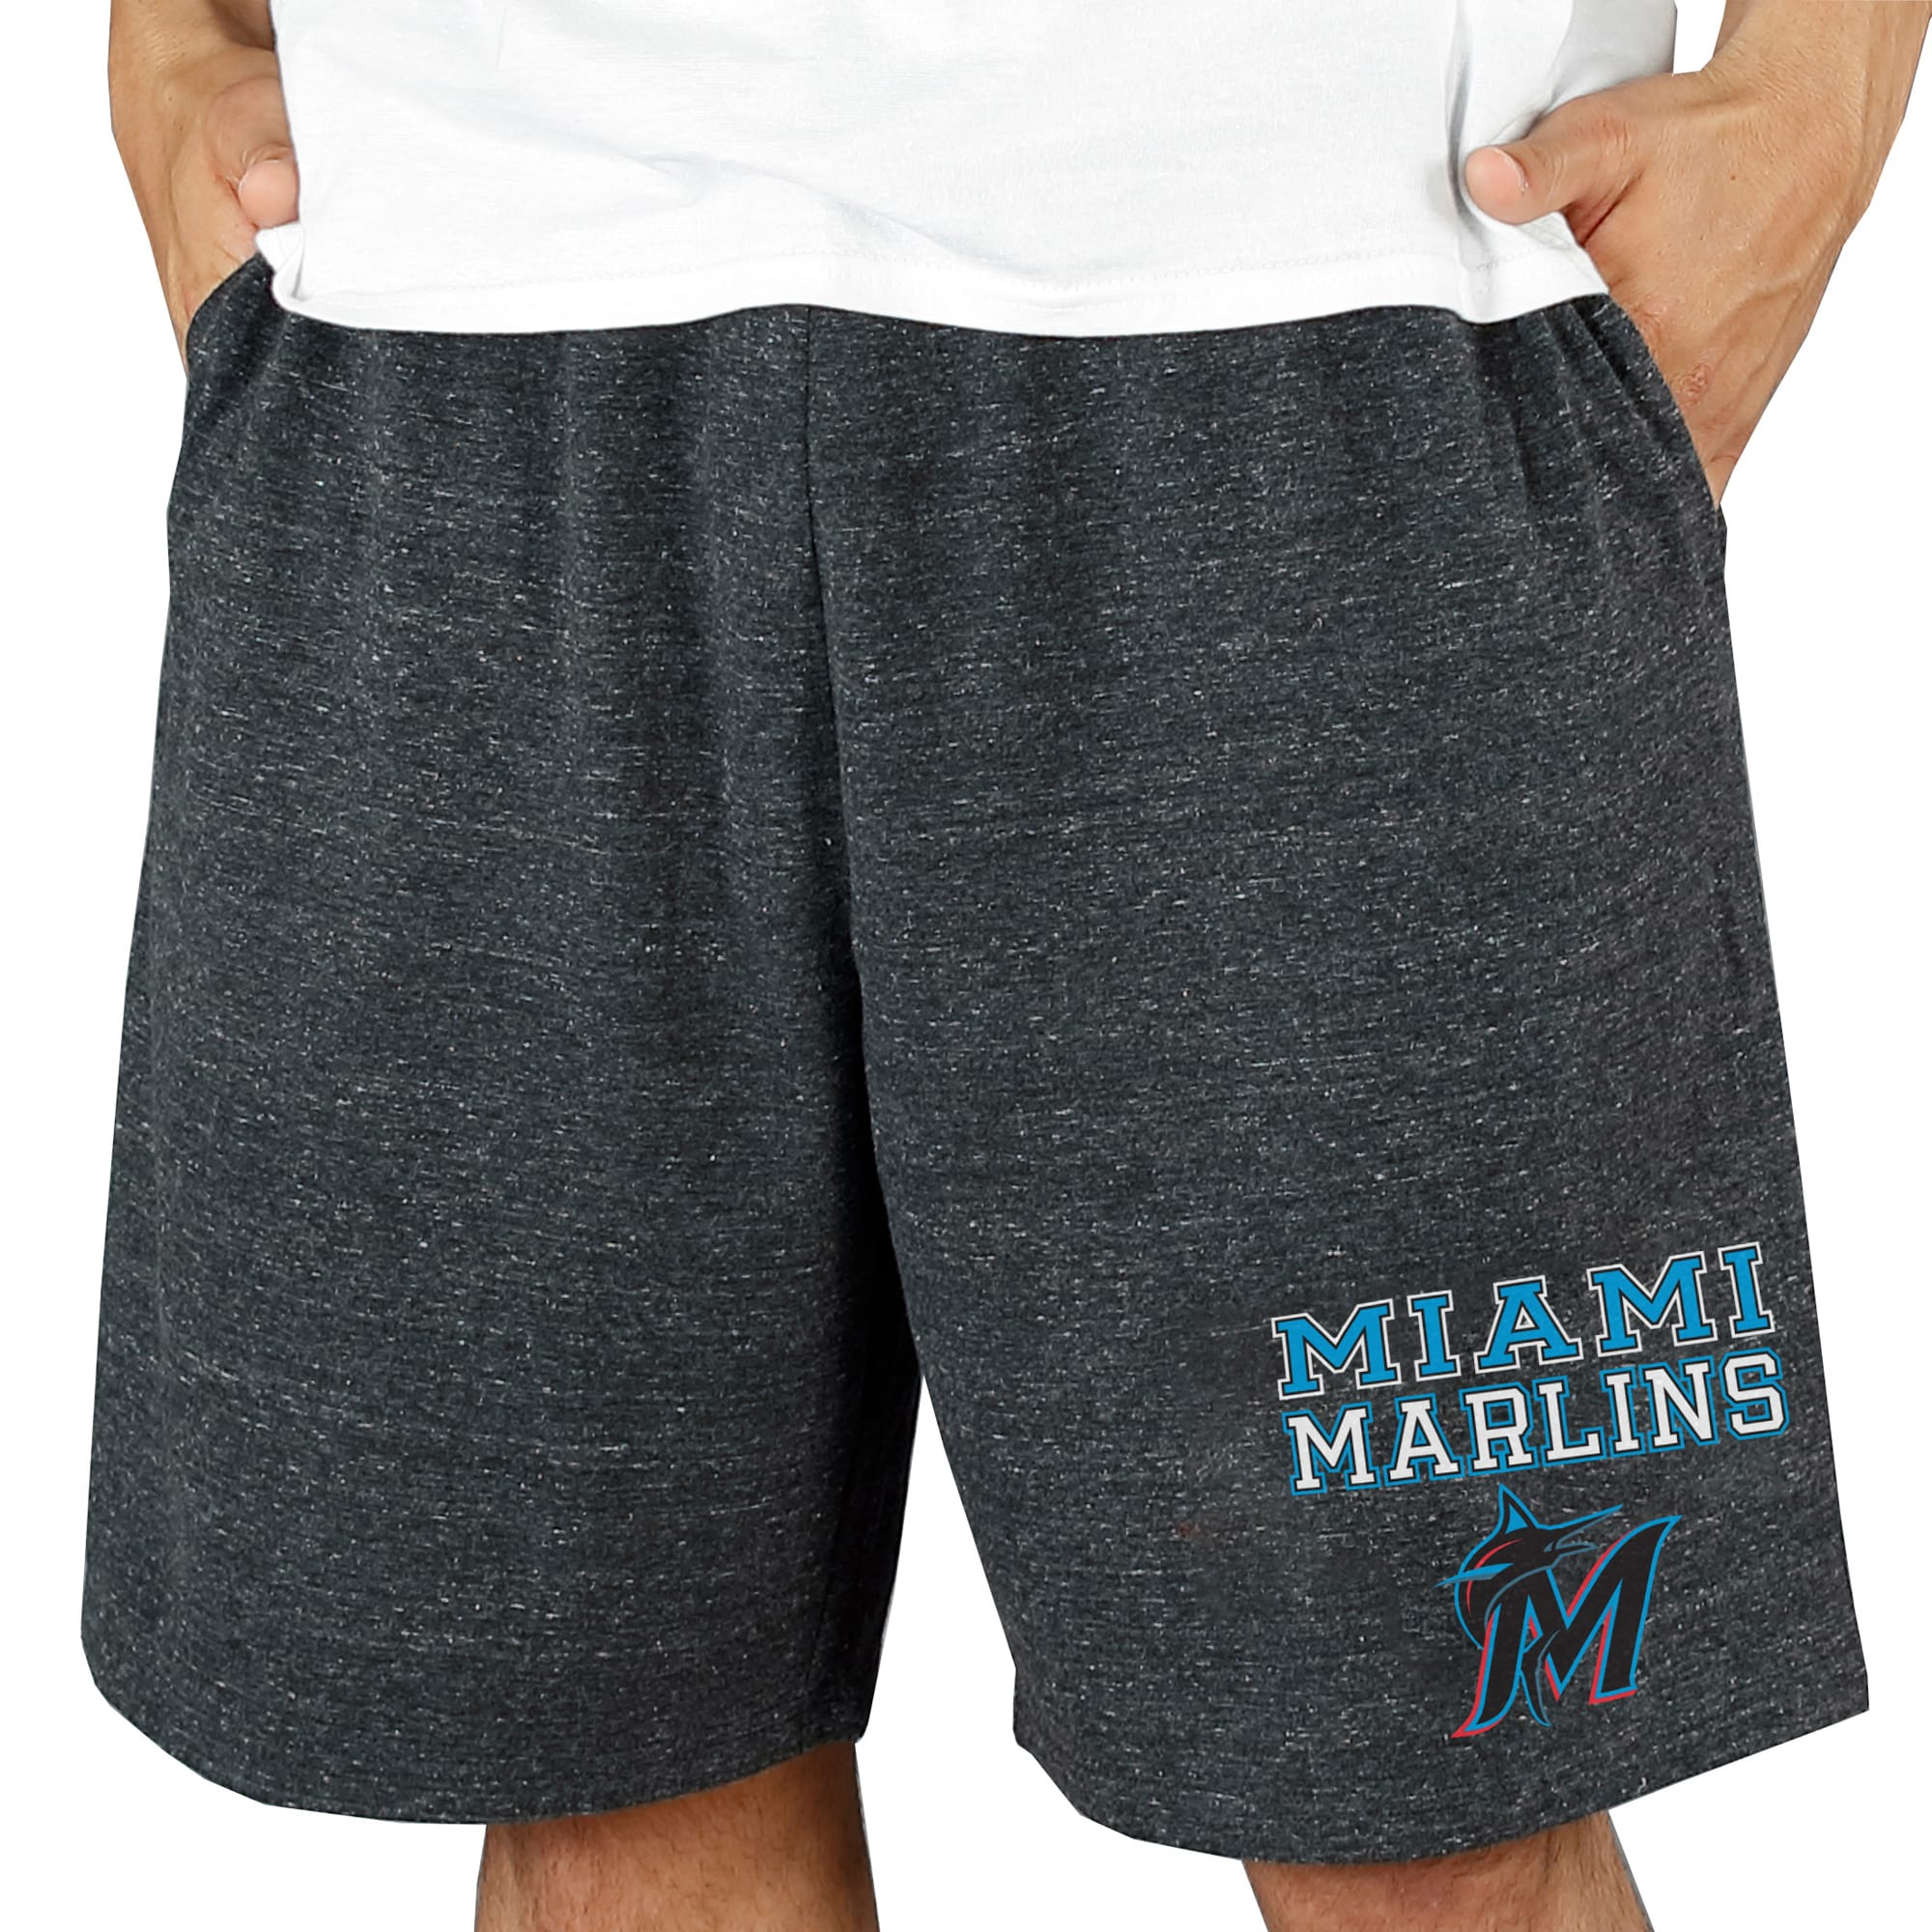 Miami Marlins Concepts Sport Pitch Knit Jam Shorts - Charcoal